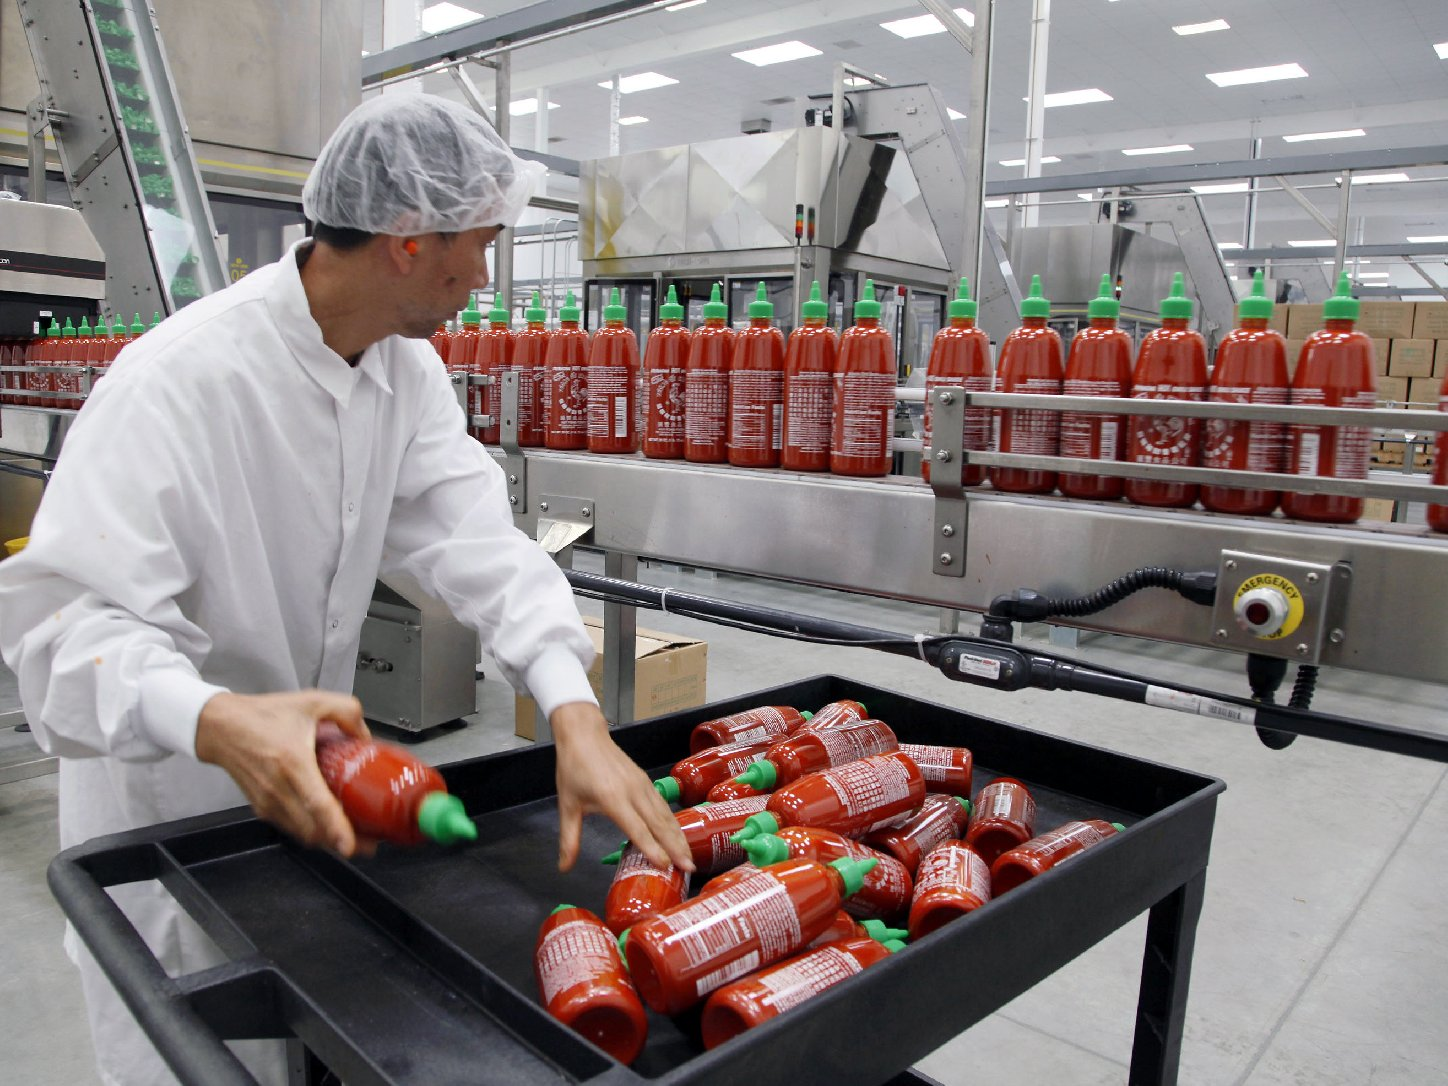 Sriracha chili sauce is produced at the Huy Fong Foods factory in Irwindale, Calif. Photo: Nick Ut/AP